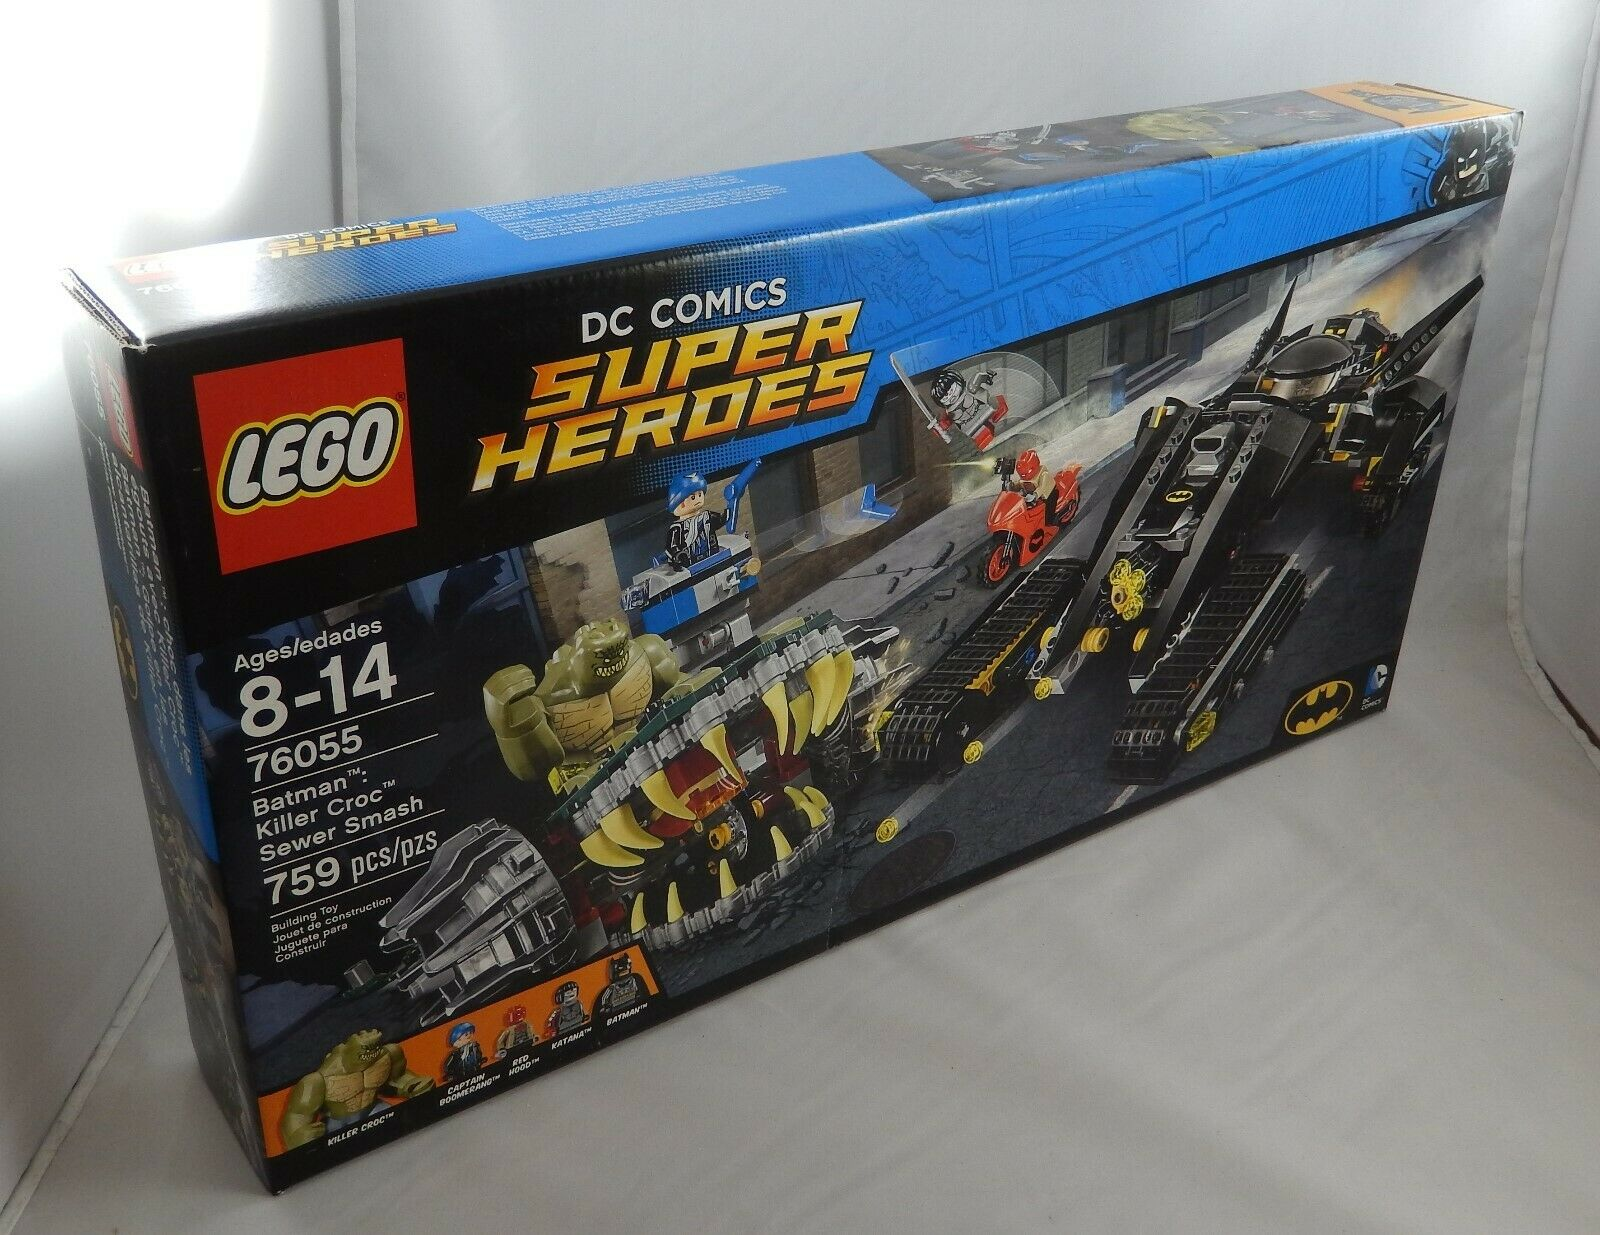 LEGO DC Comics Super Heroes 76055 Batman Killer Croc Sewer Smash Set New Sealed